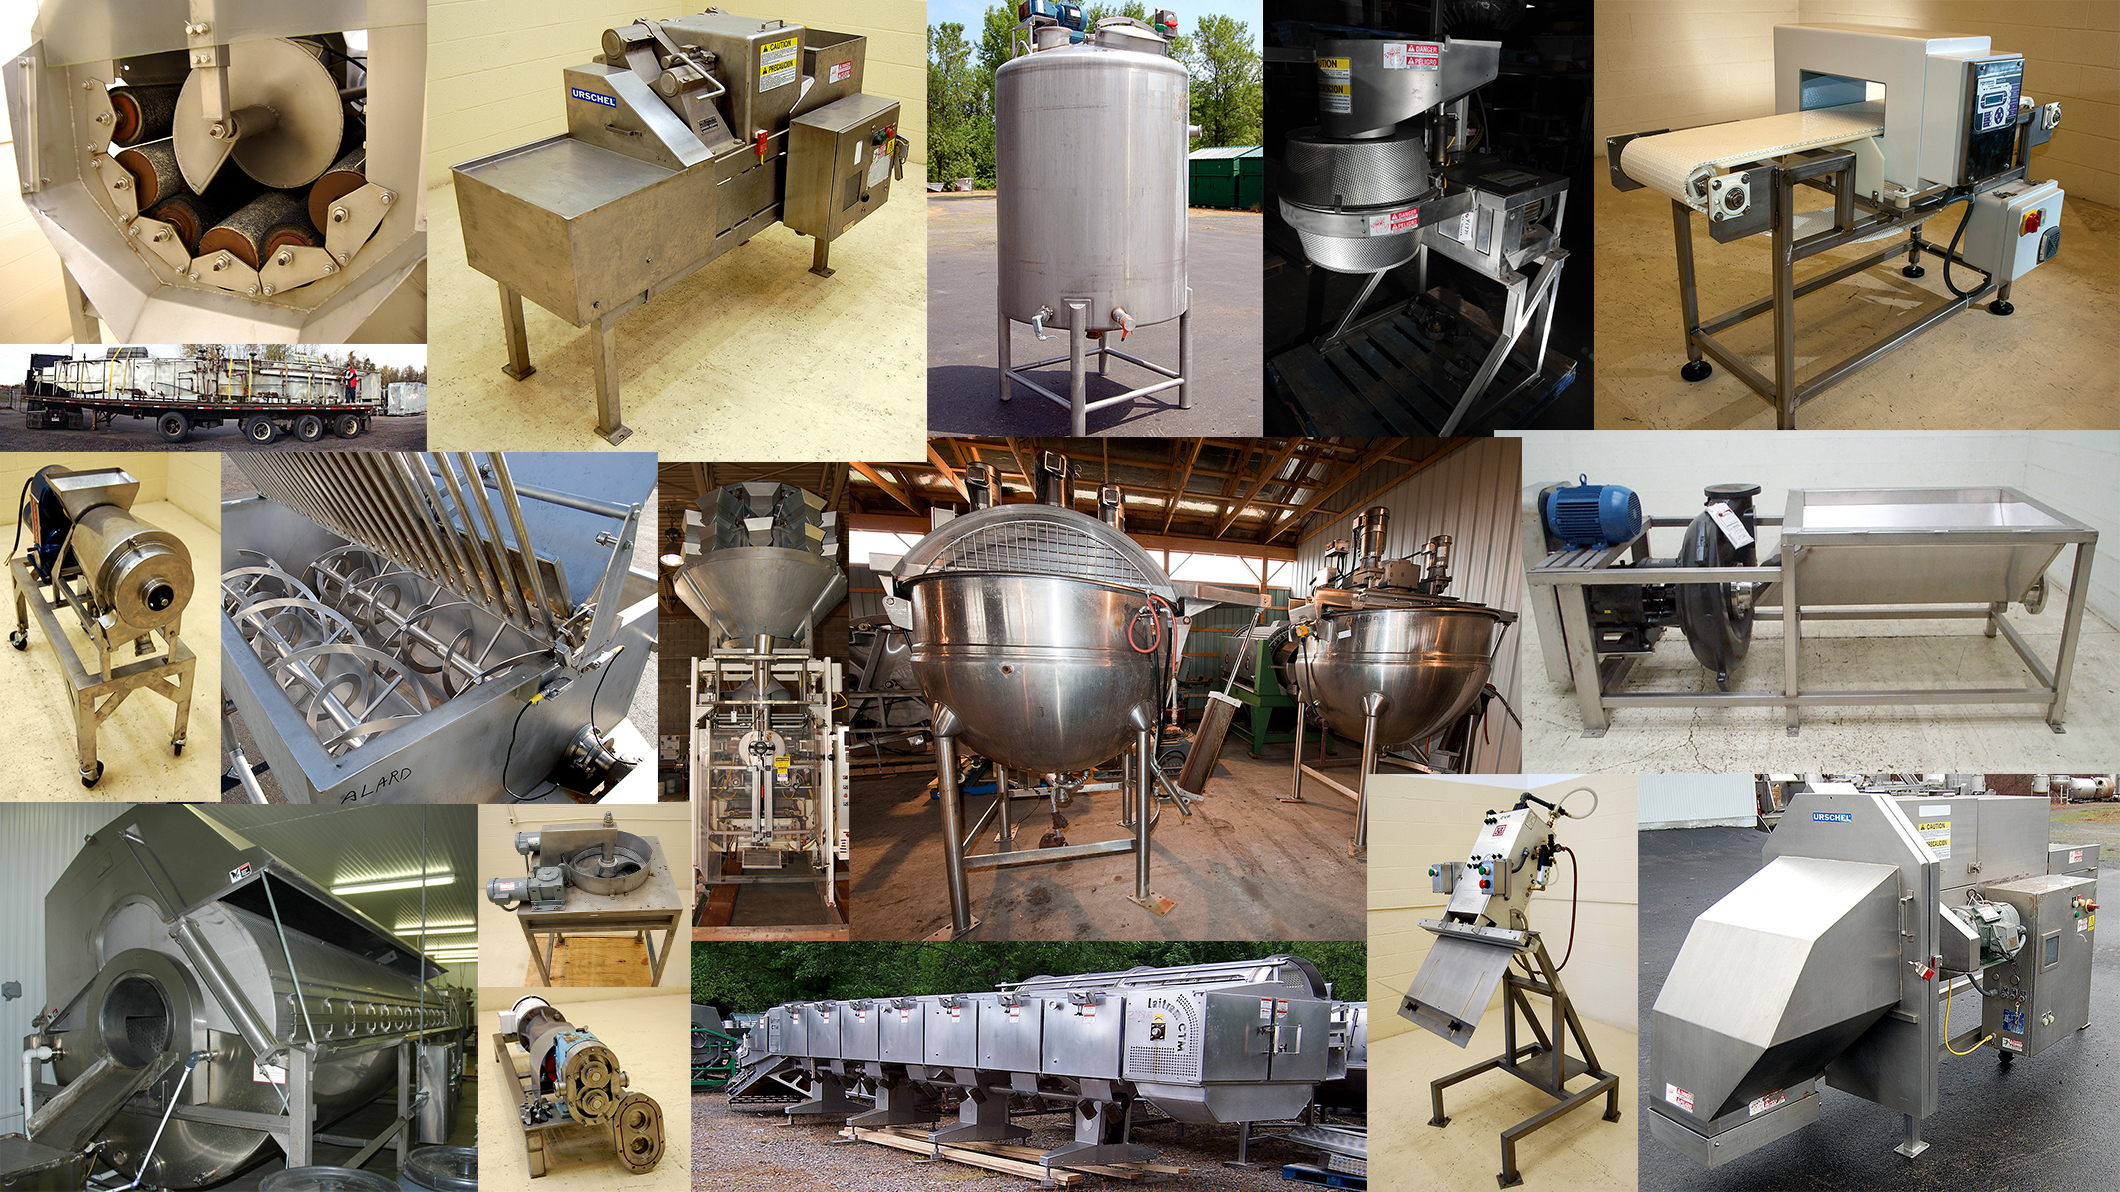 used, rebuilt, refurbished, reconditioned, and new food processing equipment, food packaging equipment